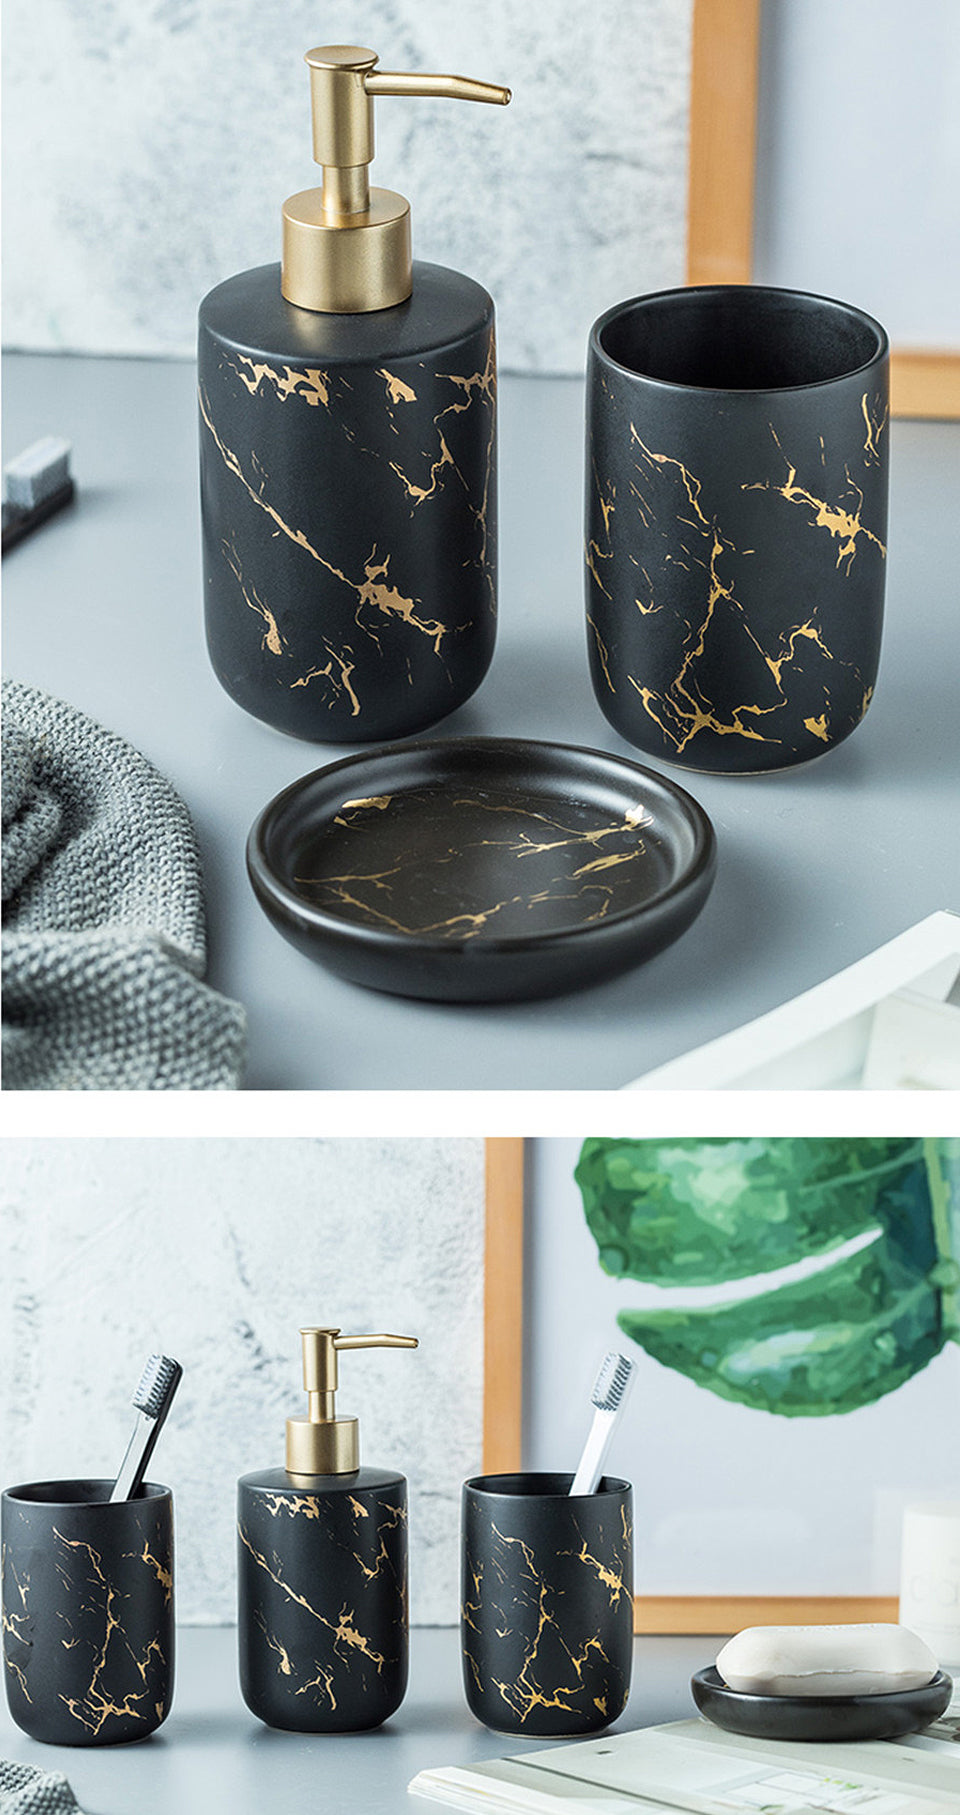 Black White Nordic Style Marble Ceramic Bathroom Accessories Soap Dispenser Pump Mouthwash Cup Soap Dish Tooth Brush Holder Modern Washroom Bathroom Essentials